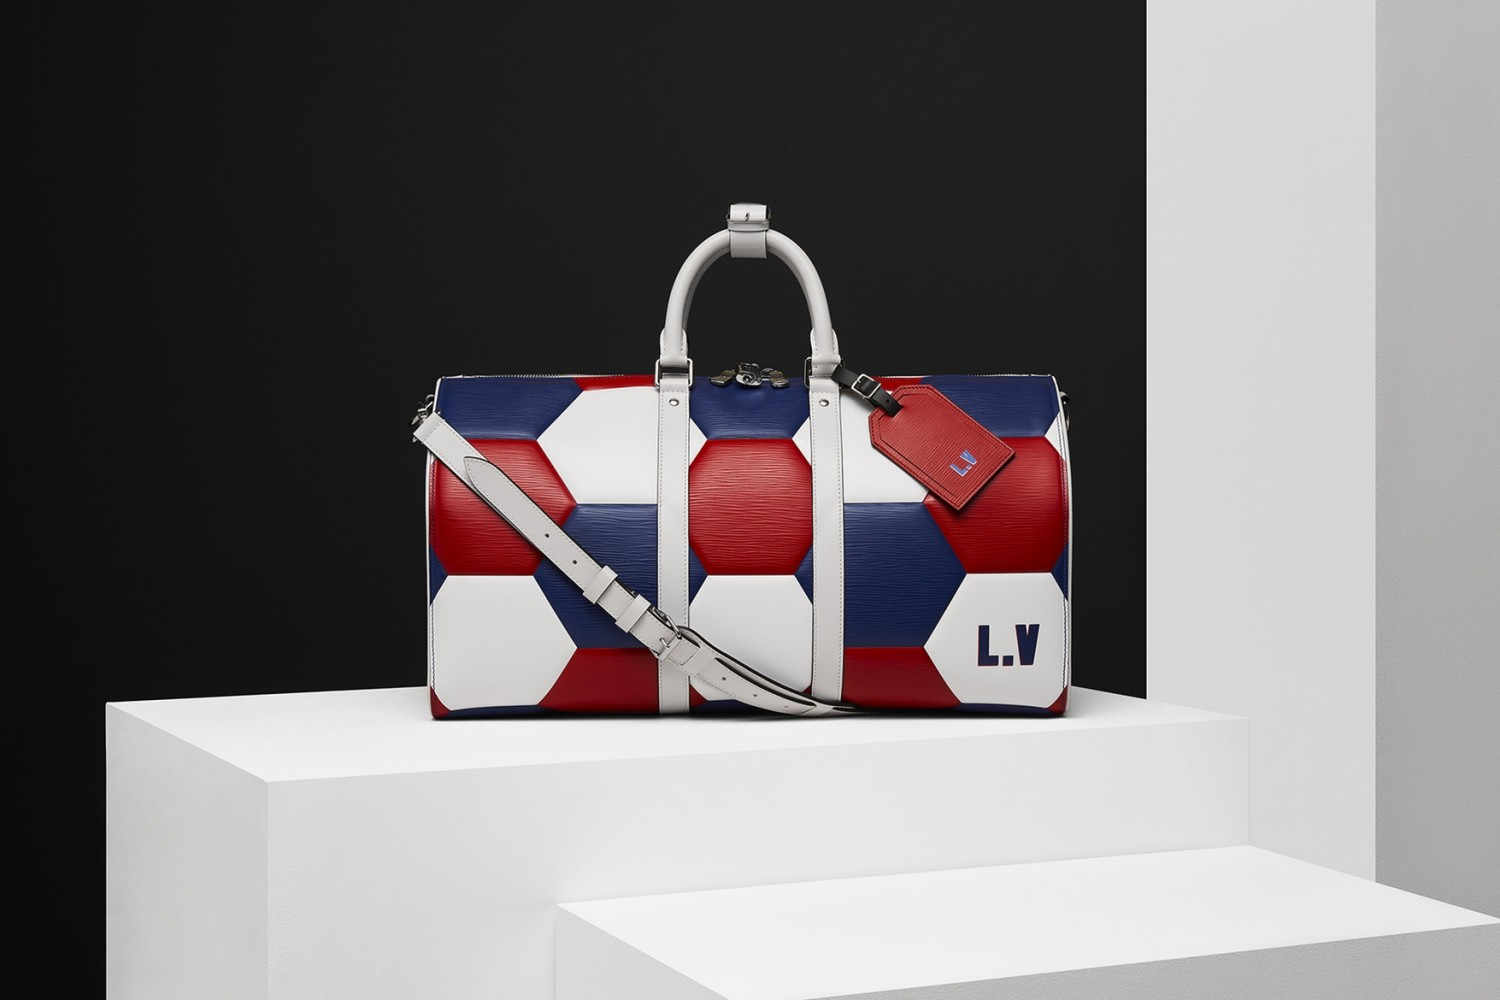 louis-vuitton-2018-fifa-world-cup-leather-accessories-2